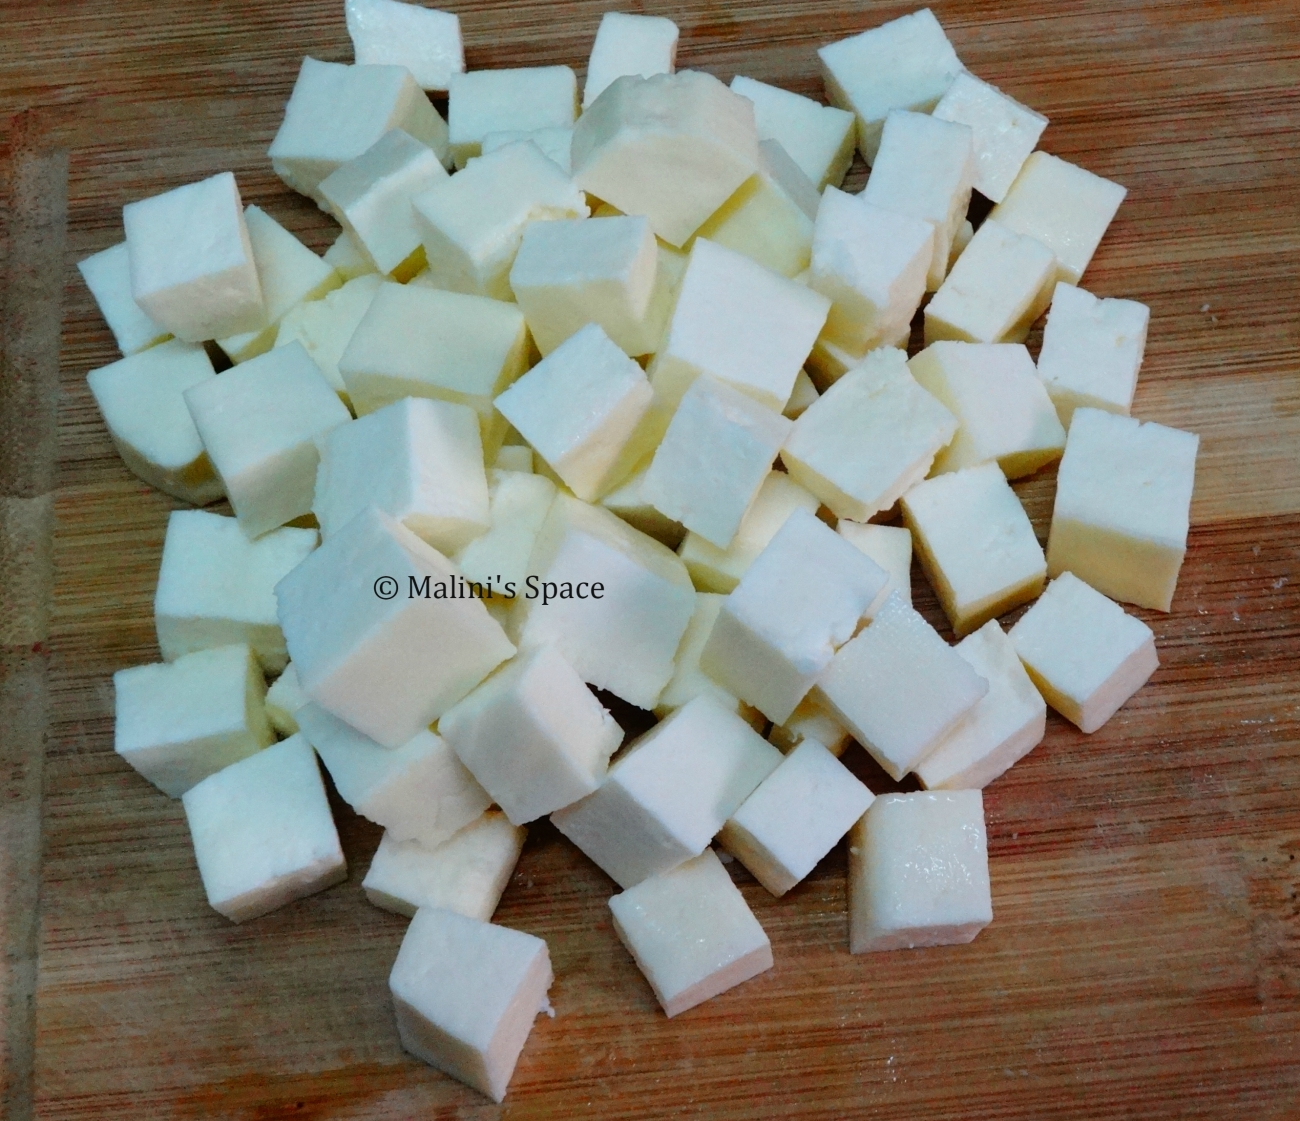 Paneer small cubes